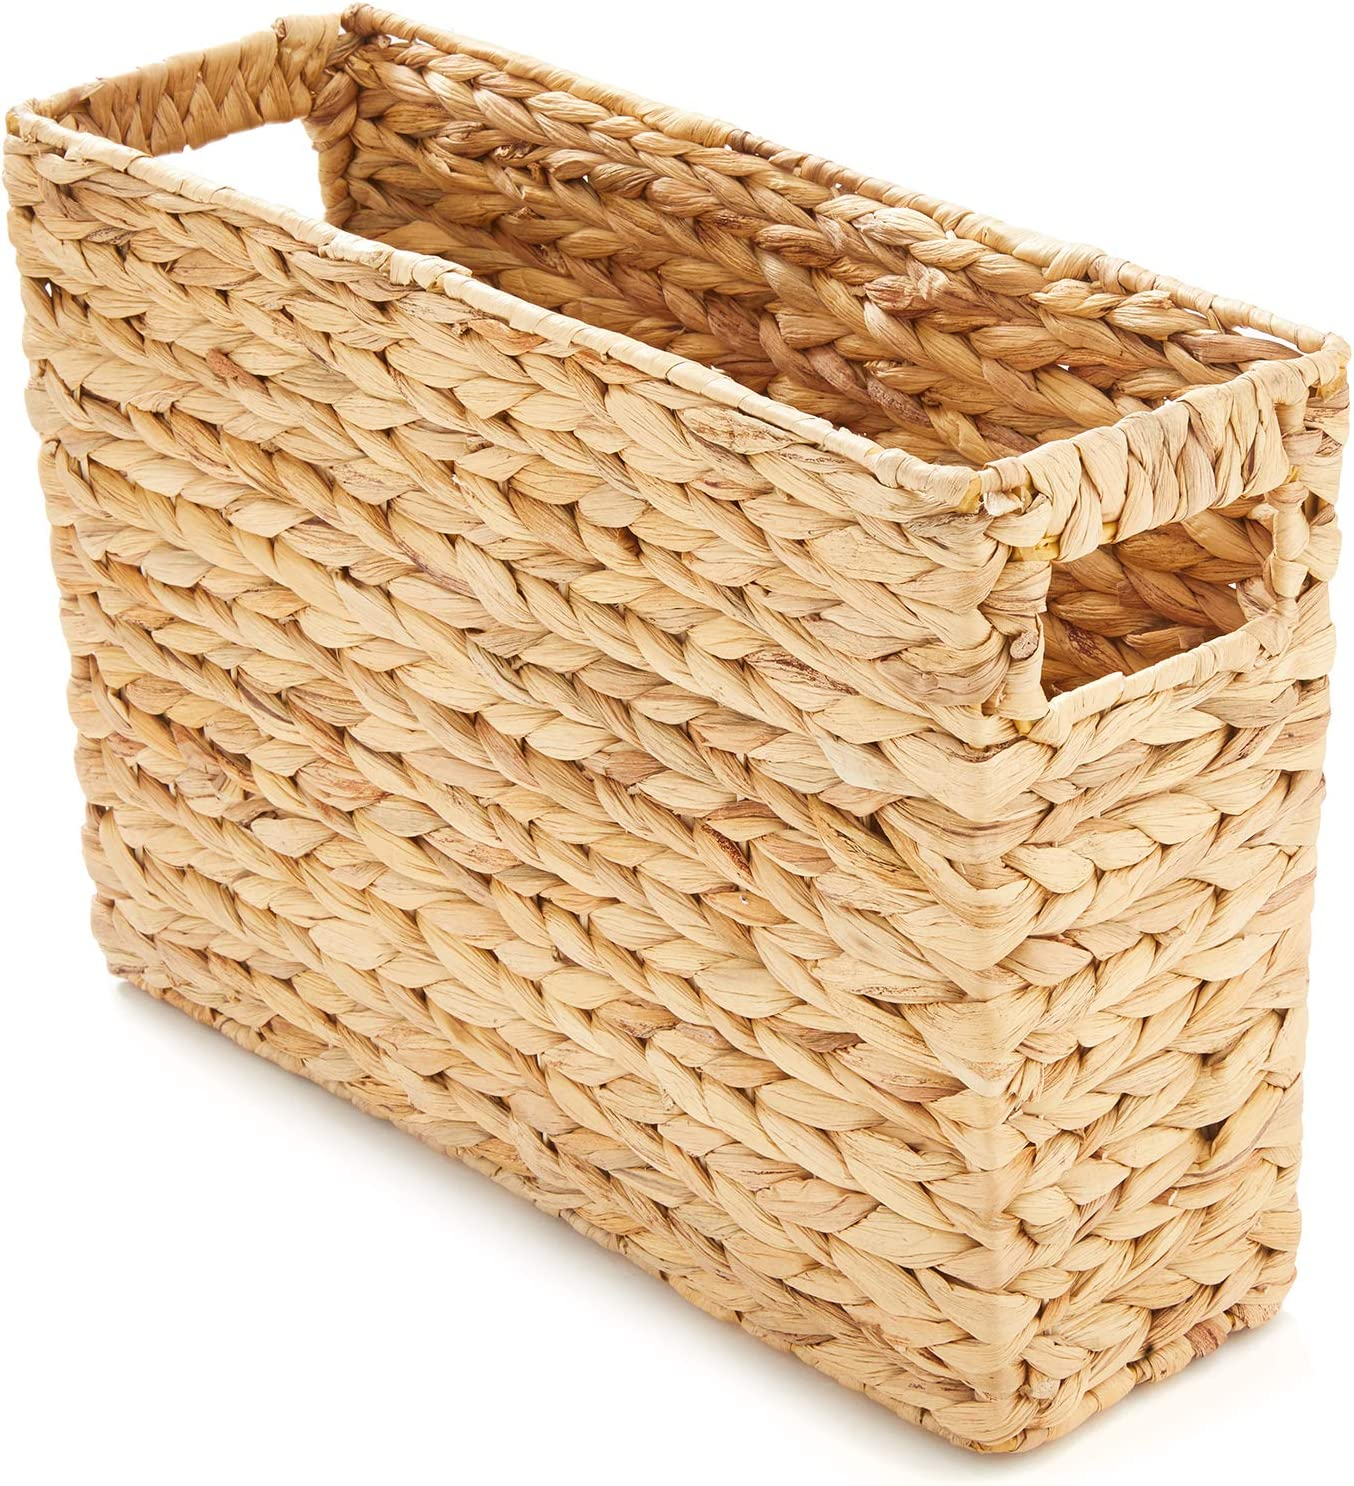 Americanflat Natural Rectangular Water Hyacinth Magazine Storage Basket with Handles - Hand-Woven - Magazine Basket, Home Office Basket - Eco-Friendly